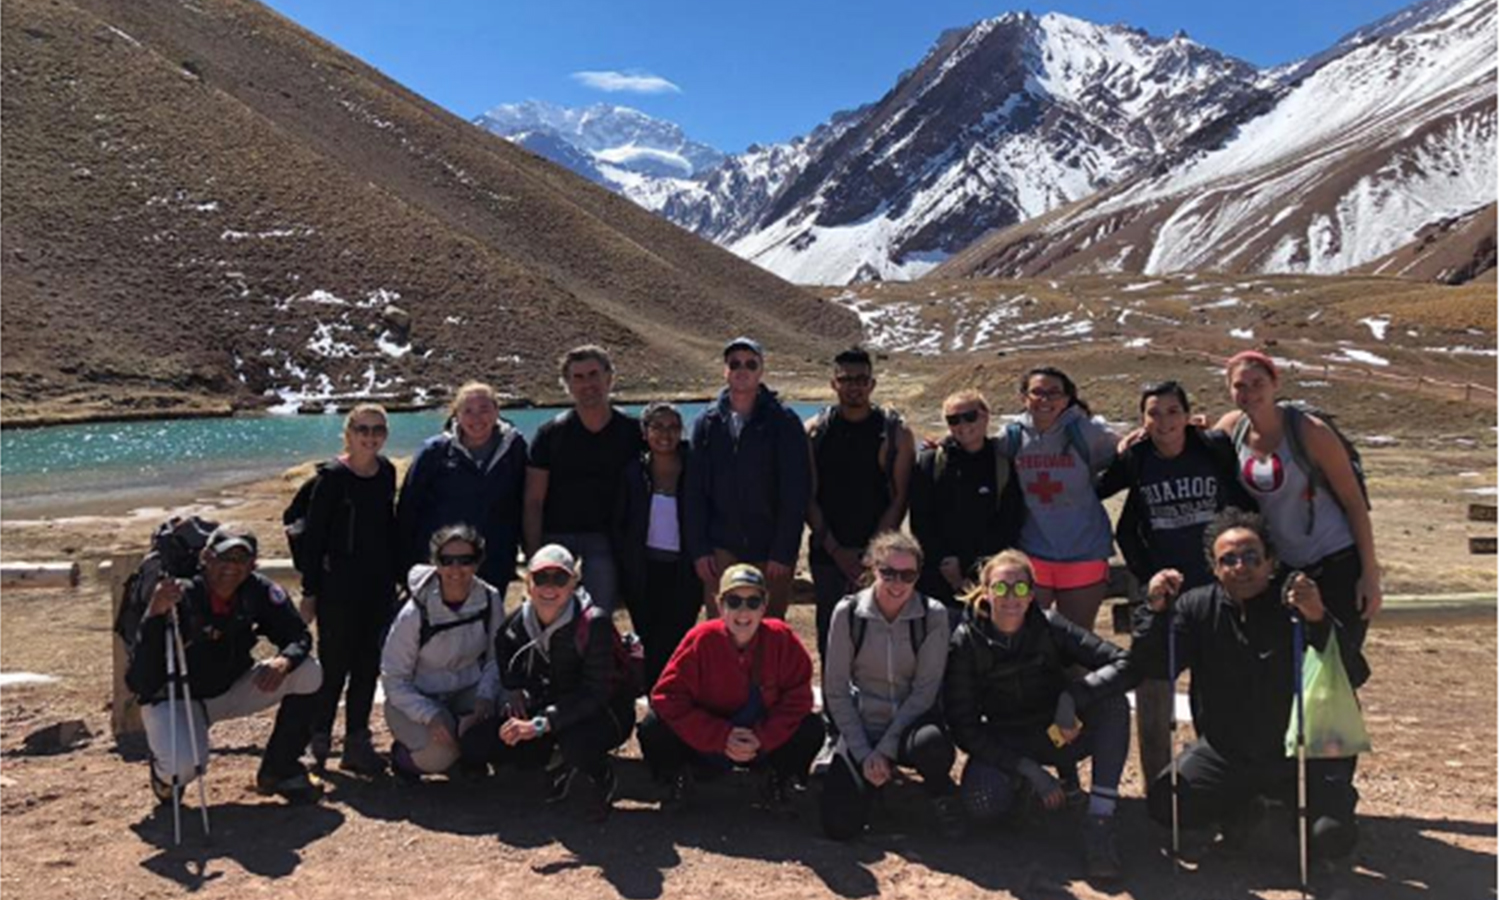 Students from the Mendoza abroad program pose with Associate Professor of History Colby Ristow at Aconcagua Provincial Park.